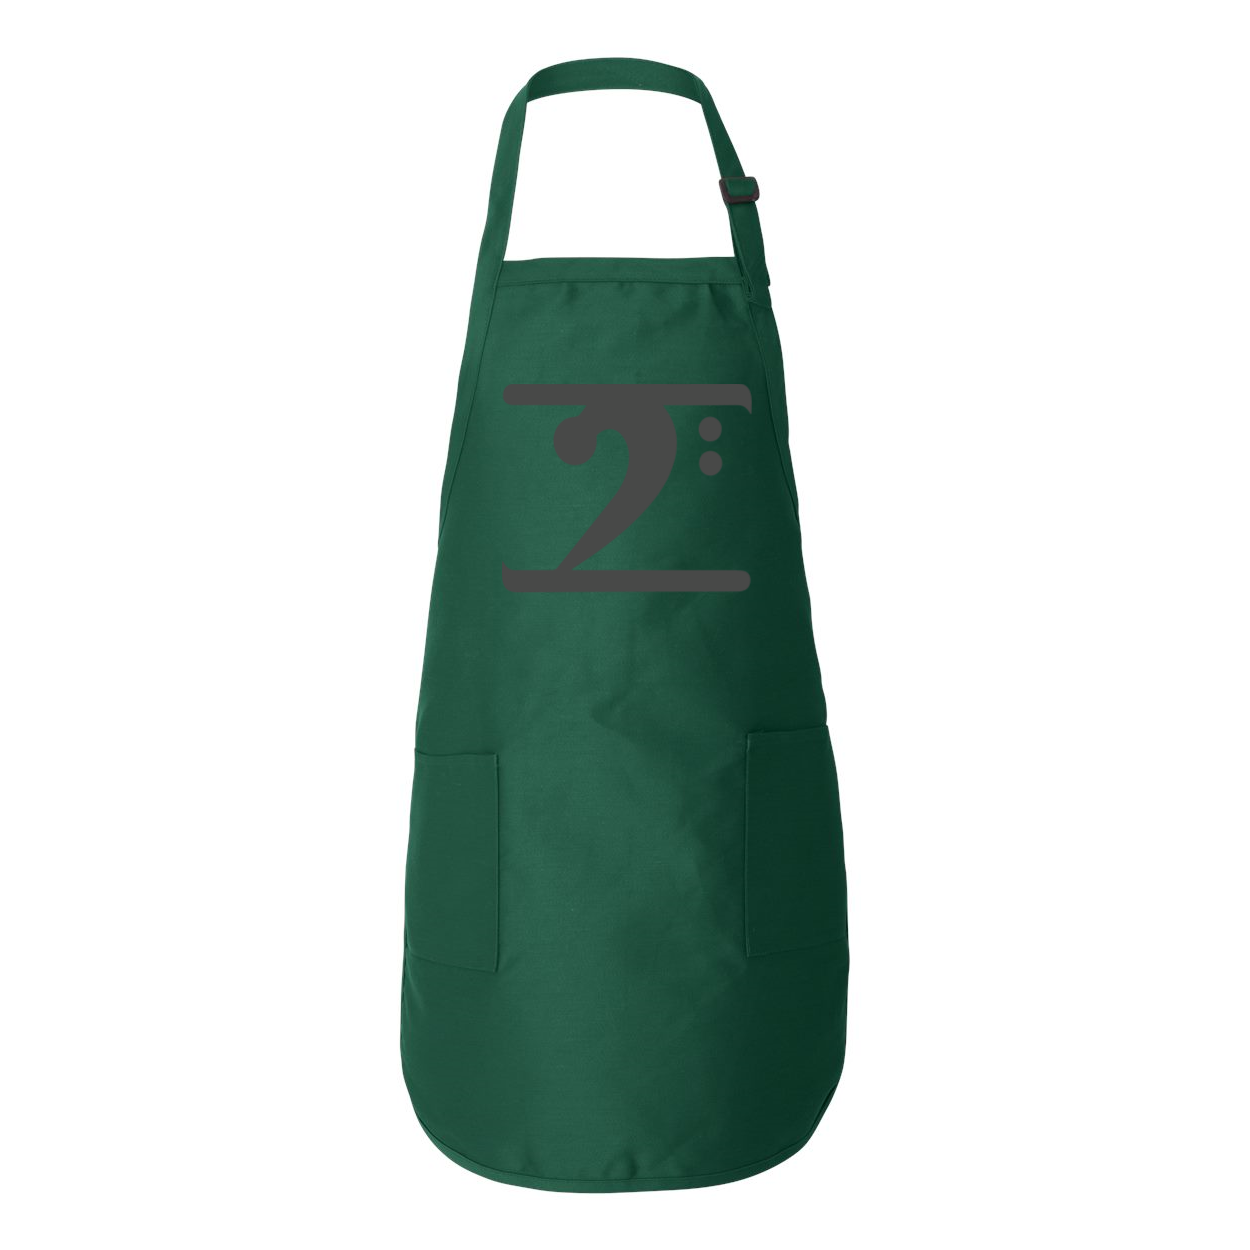 BLACK LOGO Full-Length Apron with Pockets - Lathon Bass Wear